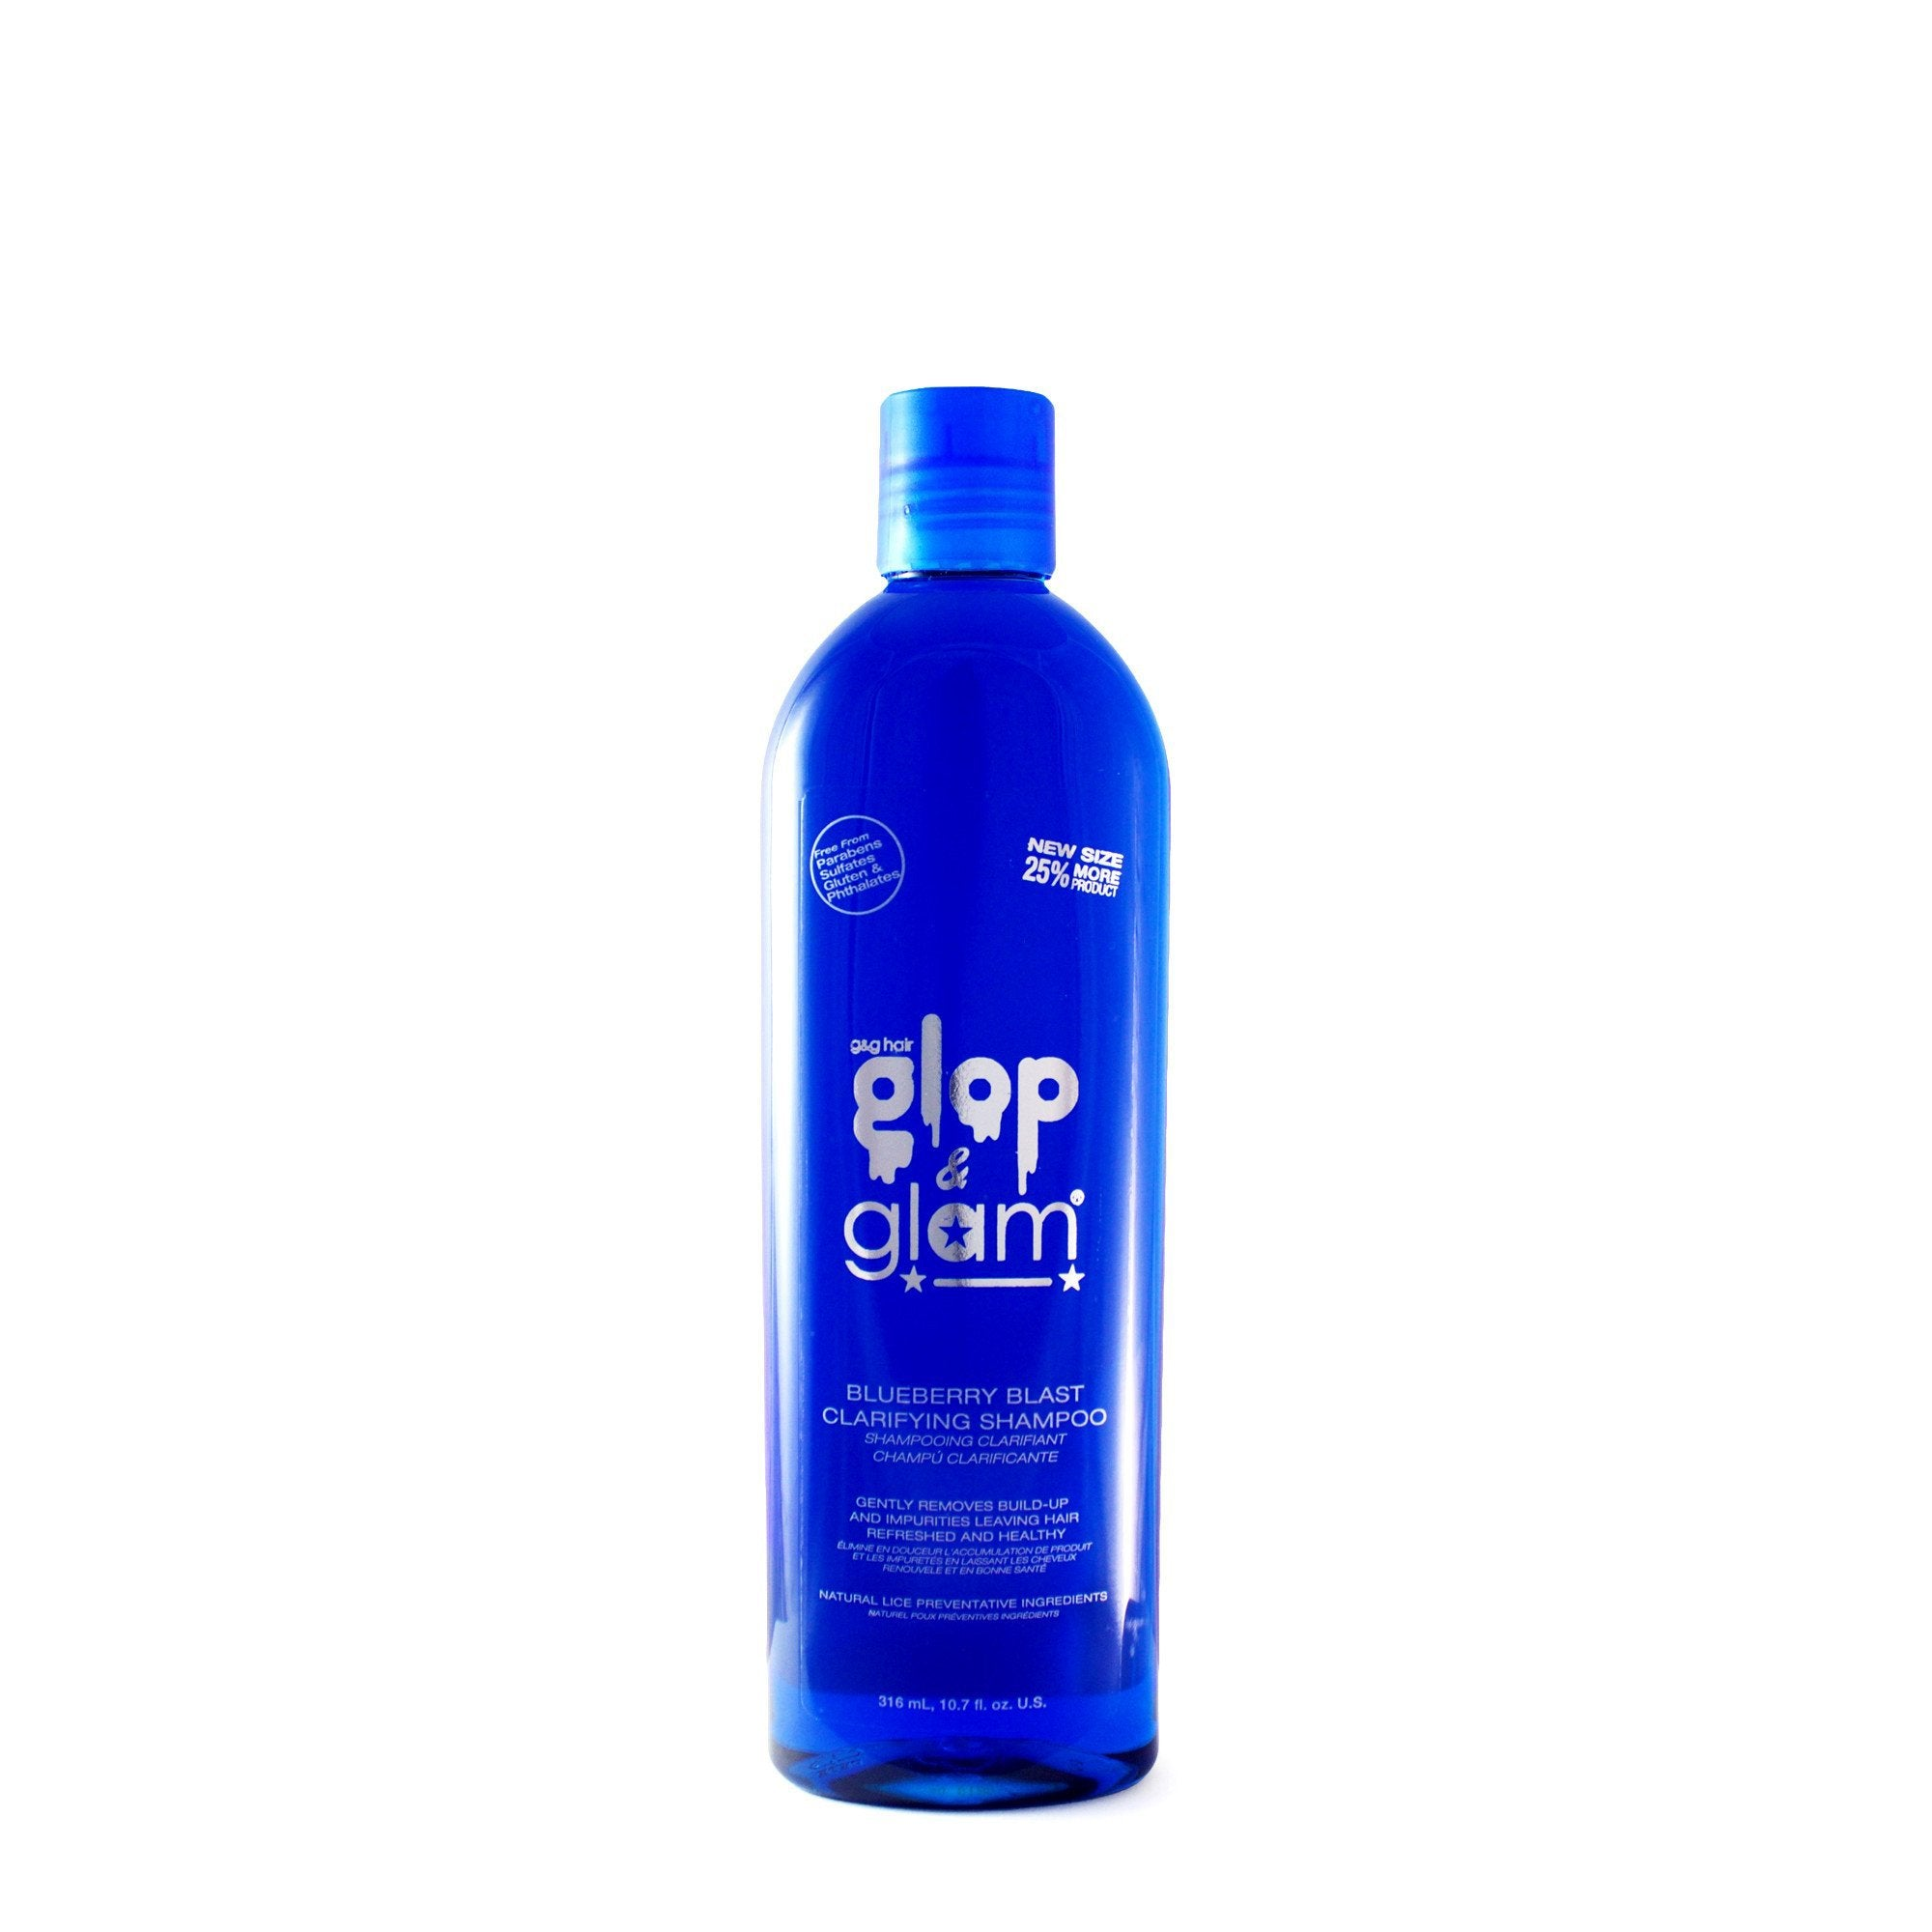 Blueberry Blast Clarifying Shampoo